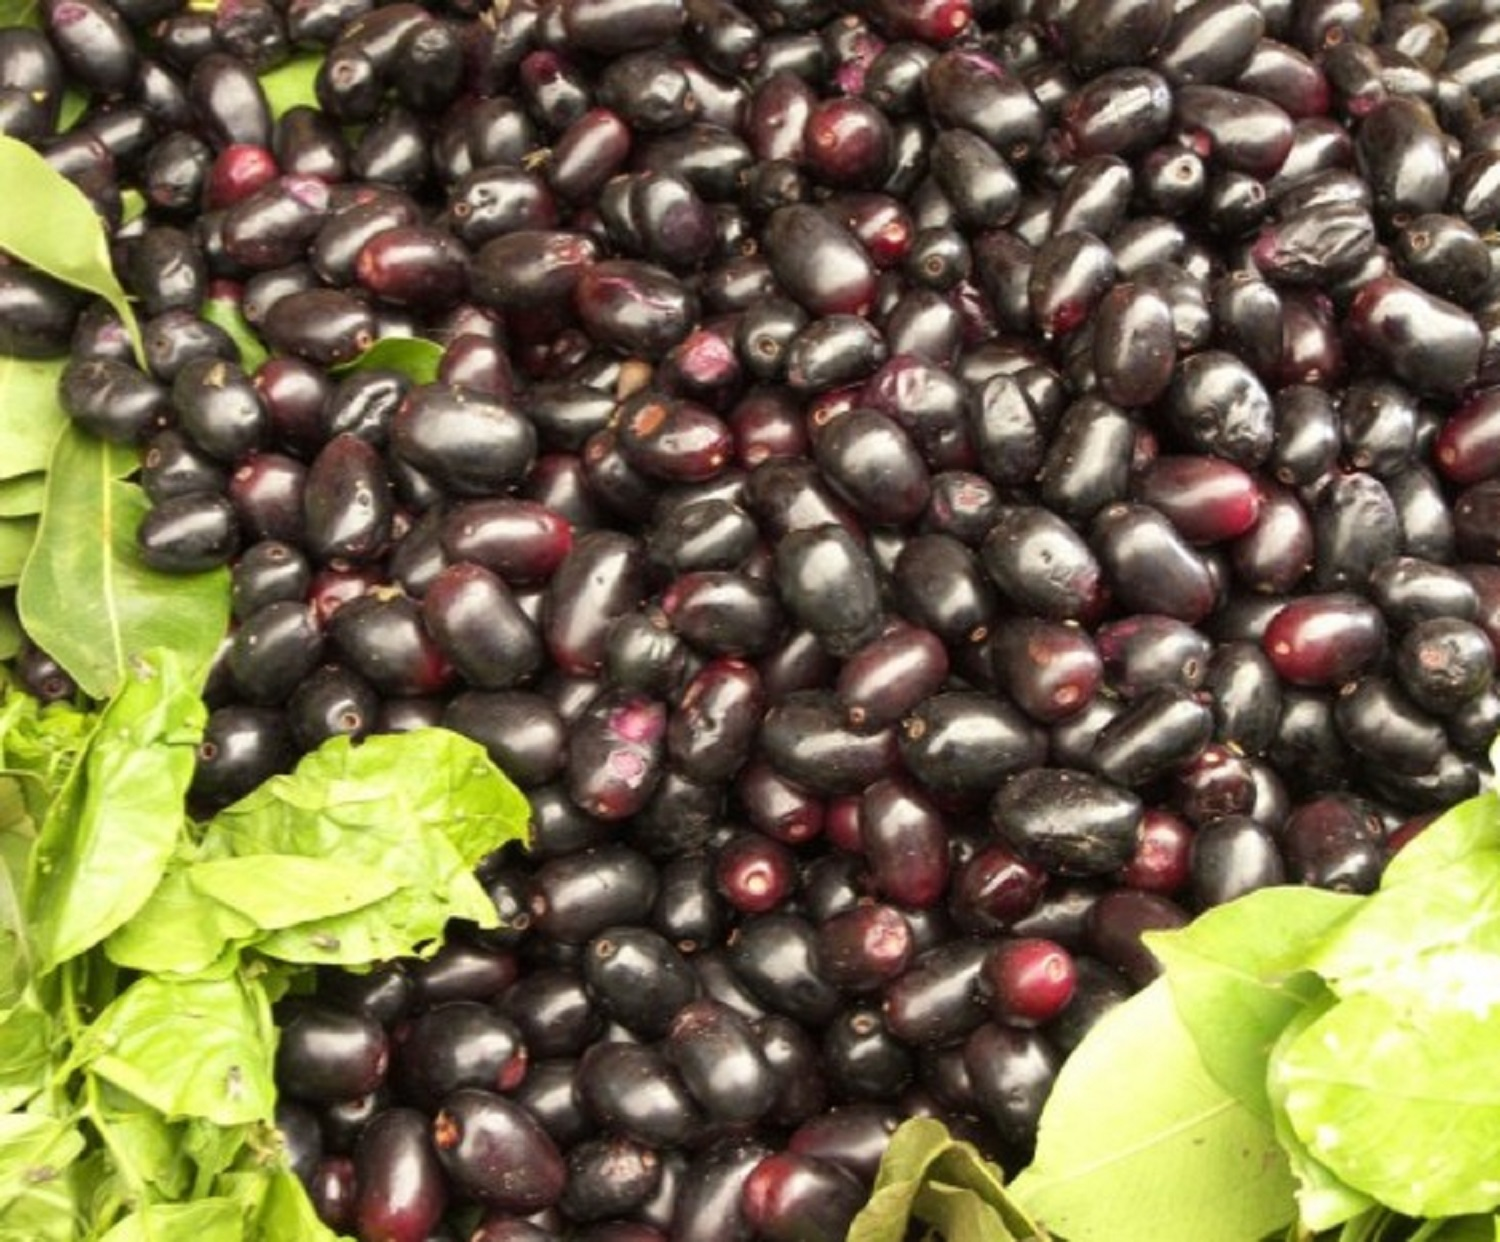 India-Jamun-Fruit-889x667-e1493996785270